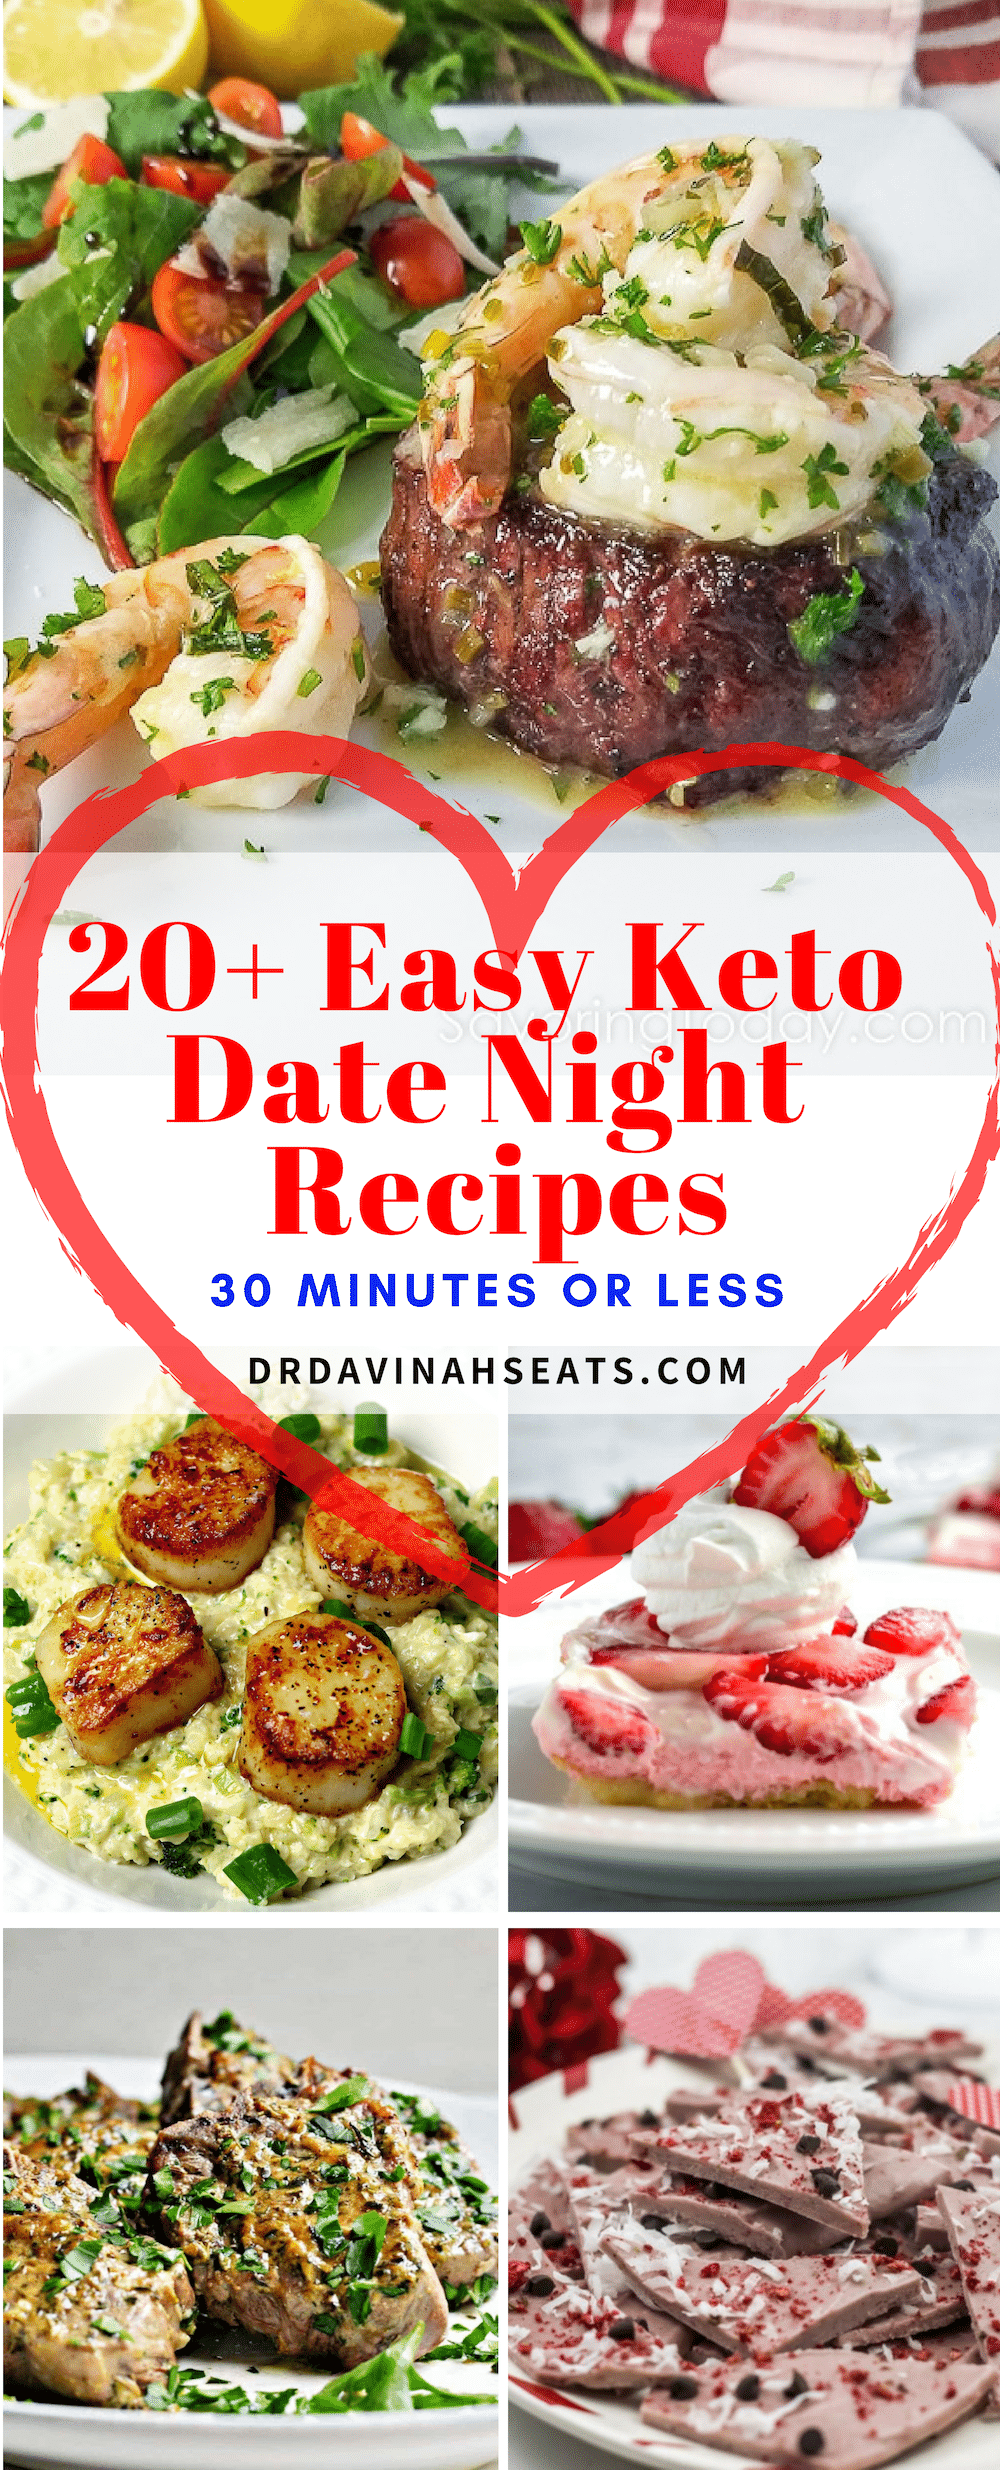 Looking for keto date night dinner ideas? Have 30 minutes? Here, you'll find 20+ appetizers, main dishes & desserts that'll make a perfect keto dinner menu.